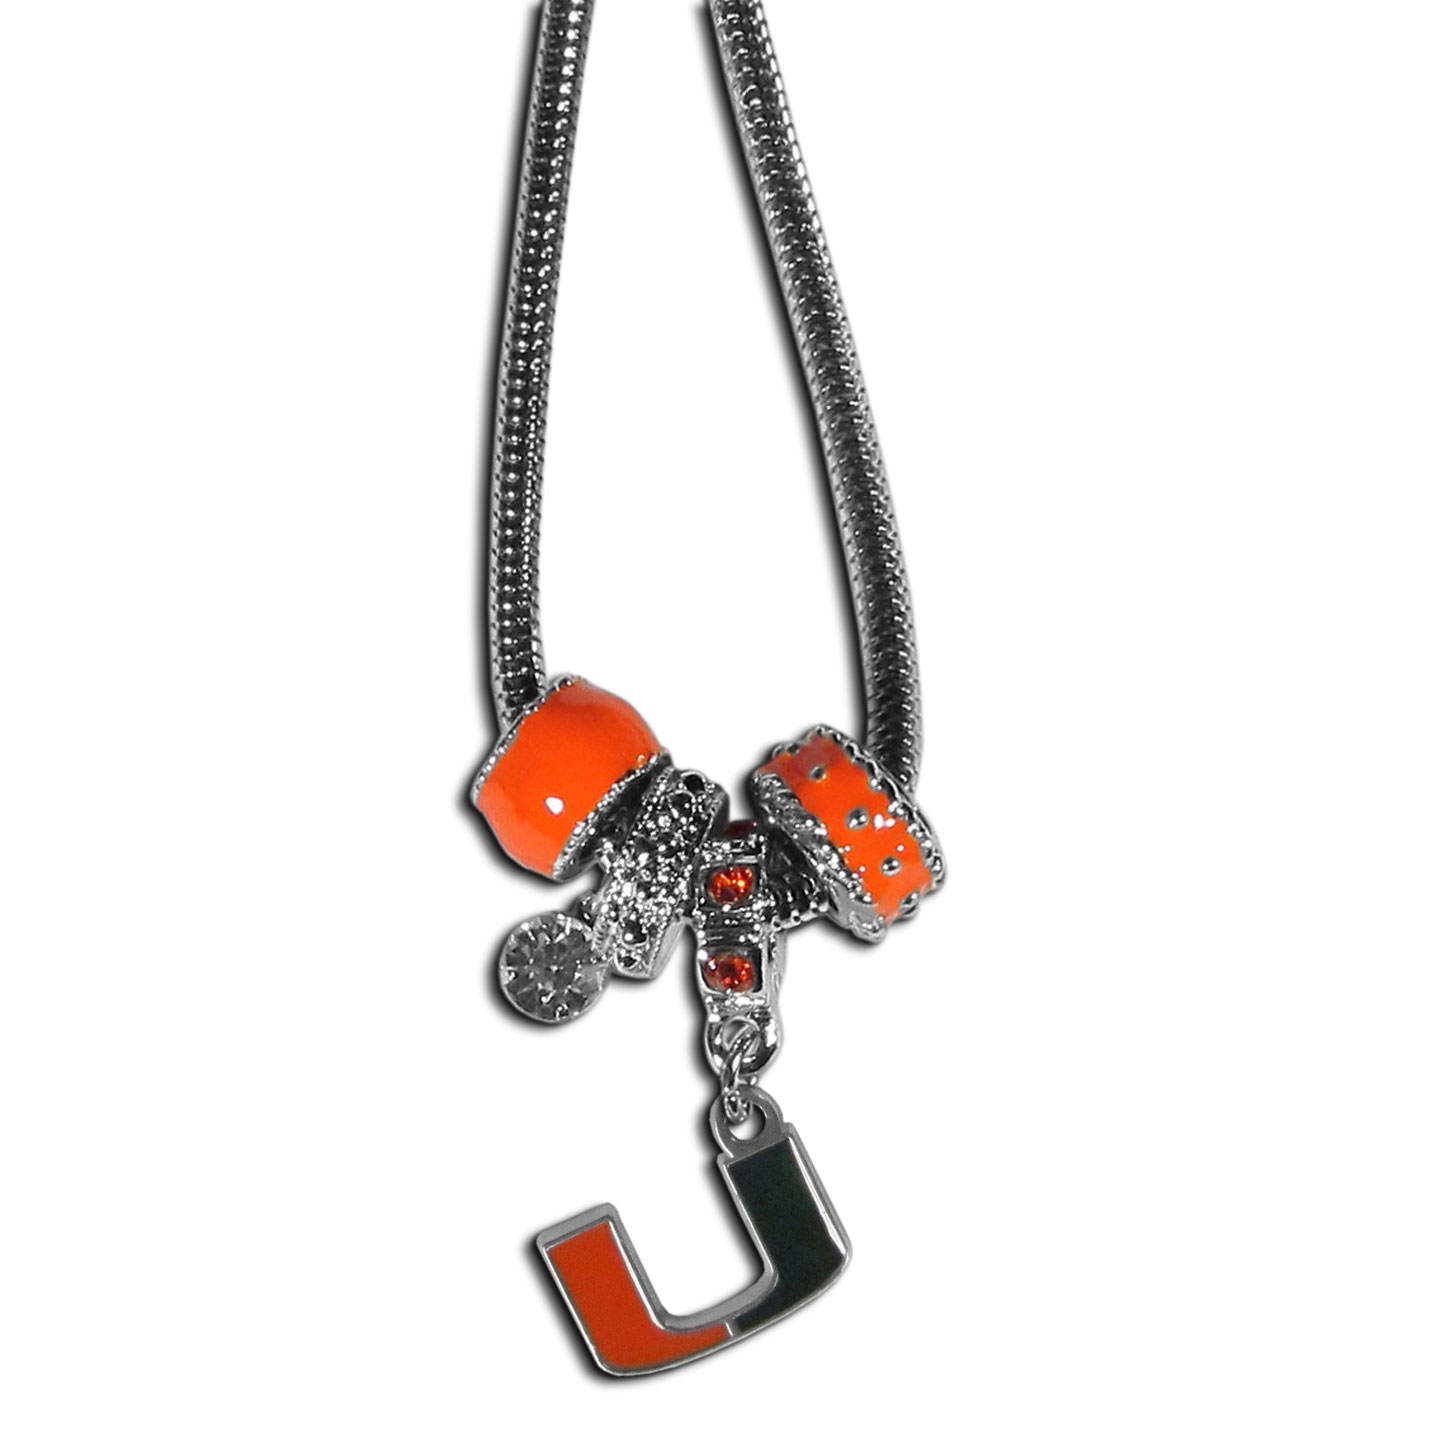 Miami Hurricanes Euro Bead Necklace - We have combined the wildly popular Euro style beads with your favorite team to create our Miami Hurricanes bead necklace. The 18 inch snake chain features 4 Euro beads with enameled team colors and rhinestone accents with a high polish, nickel free charm and rhinestone charm. Perfect way to show off your team pride.